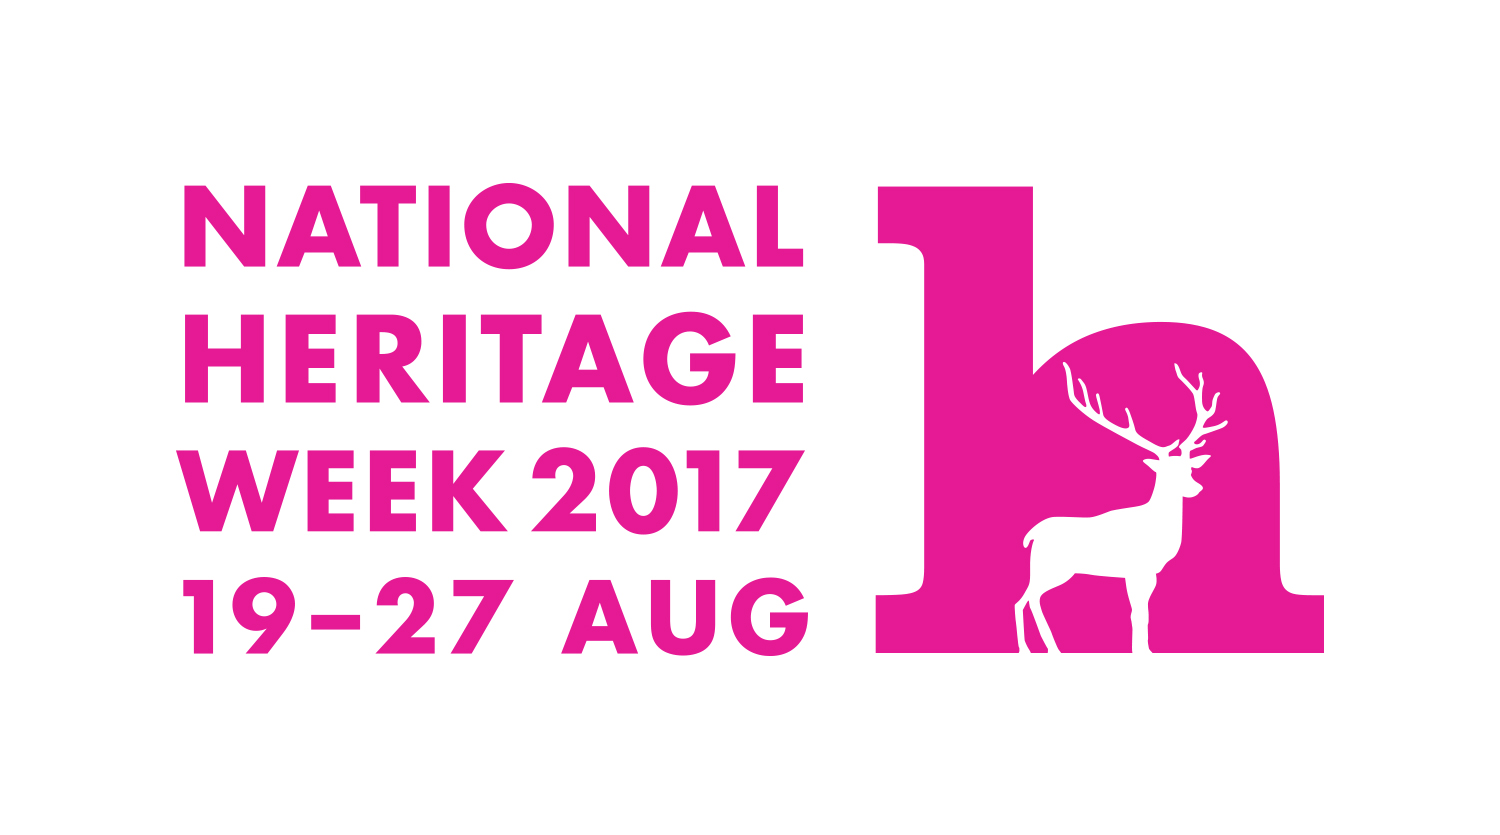 Clonmel Library: National Heritage Week 2017